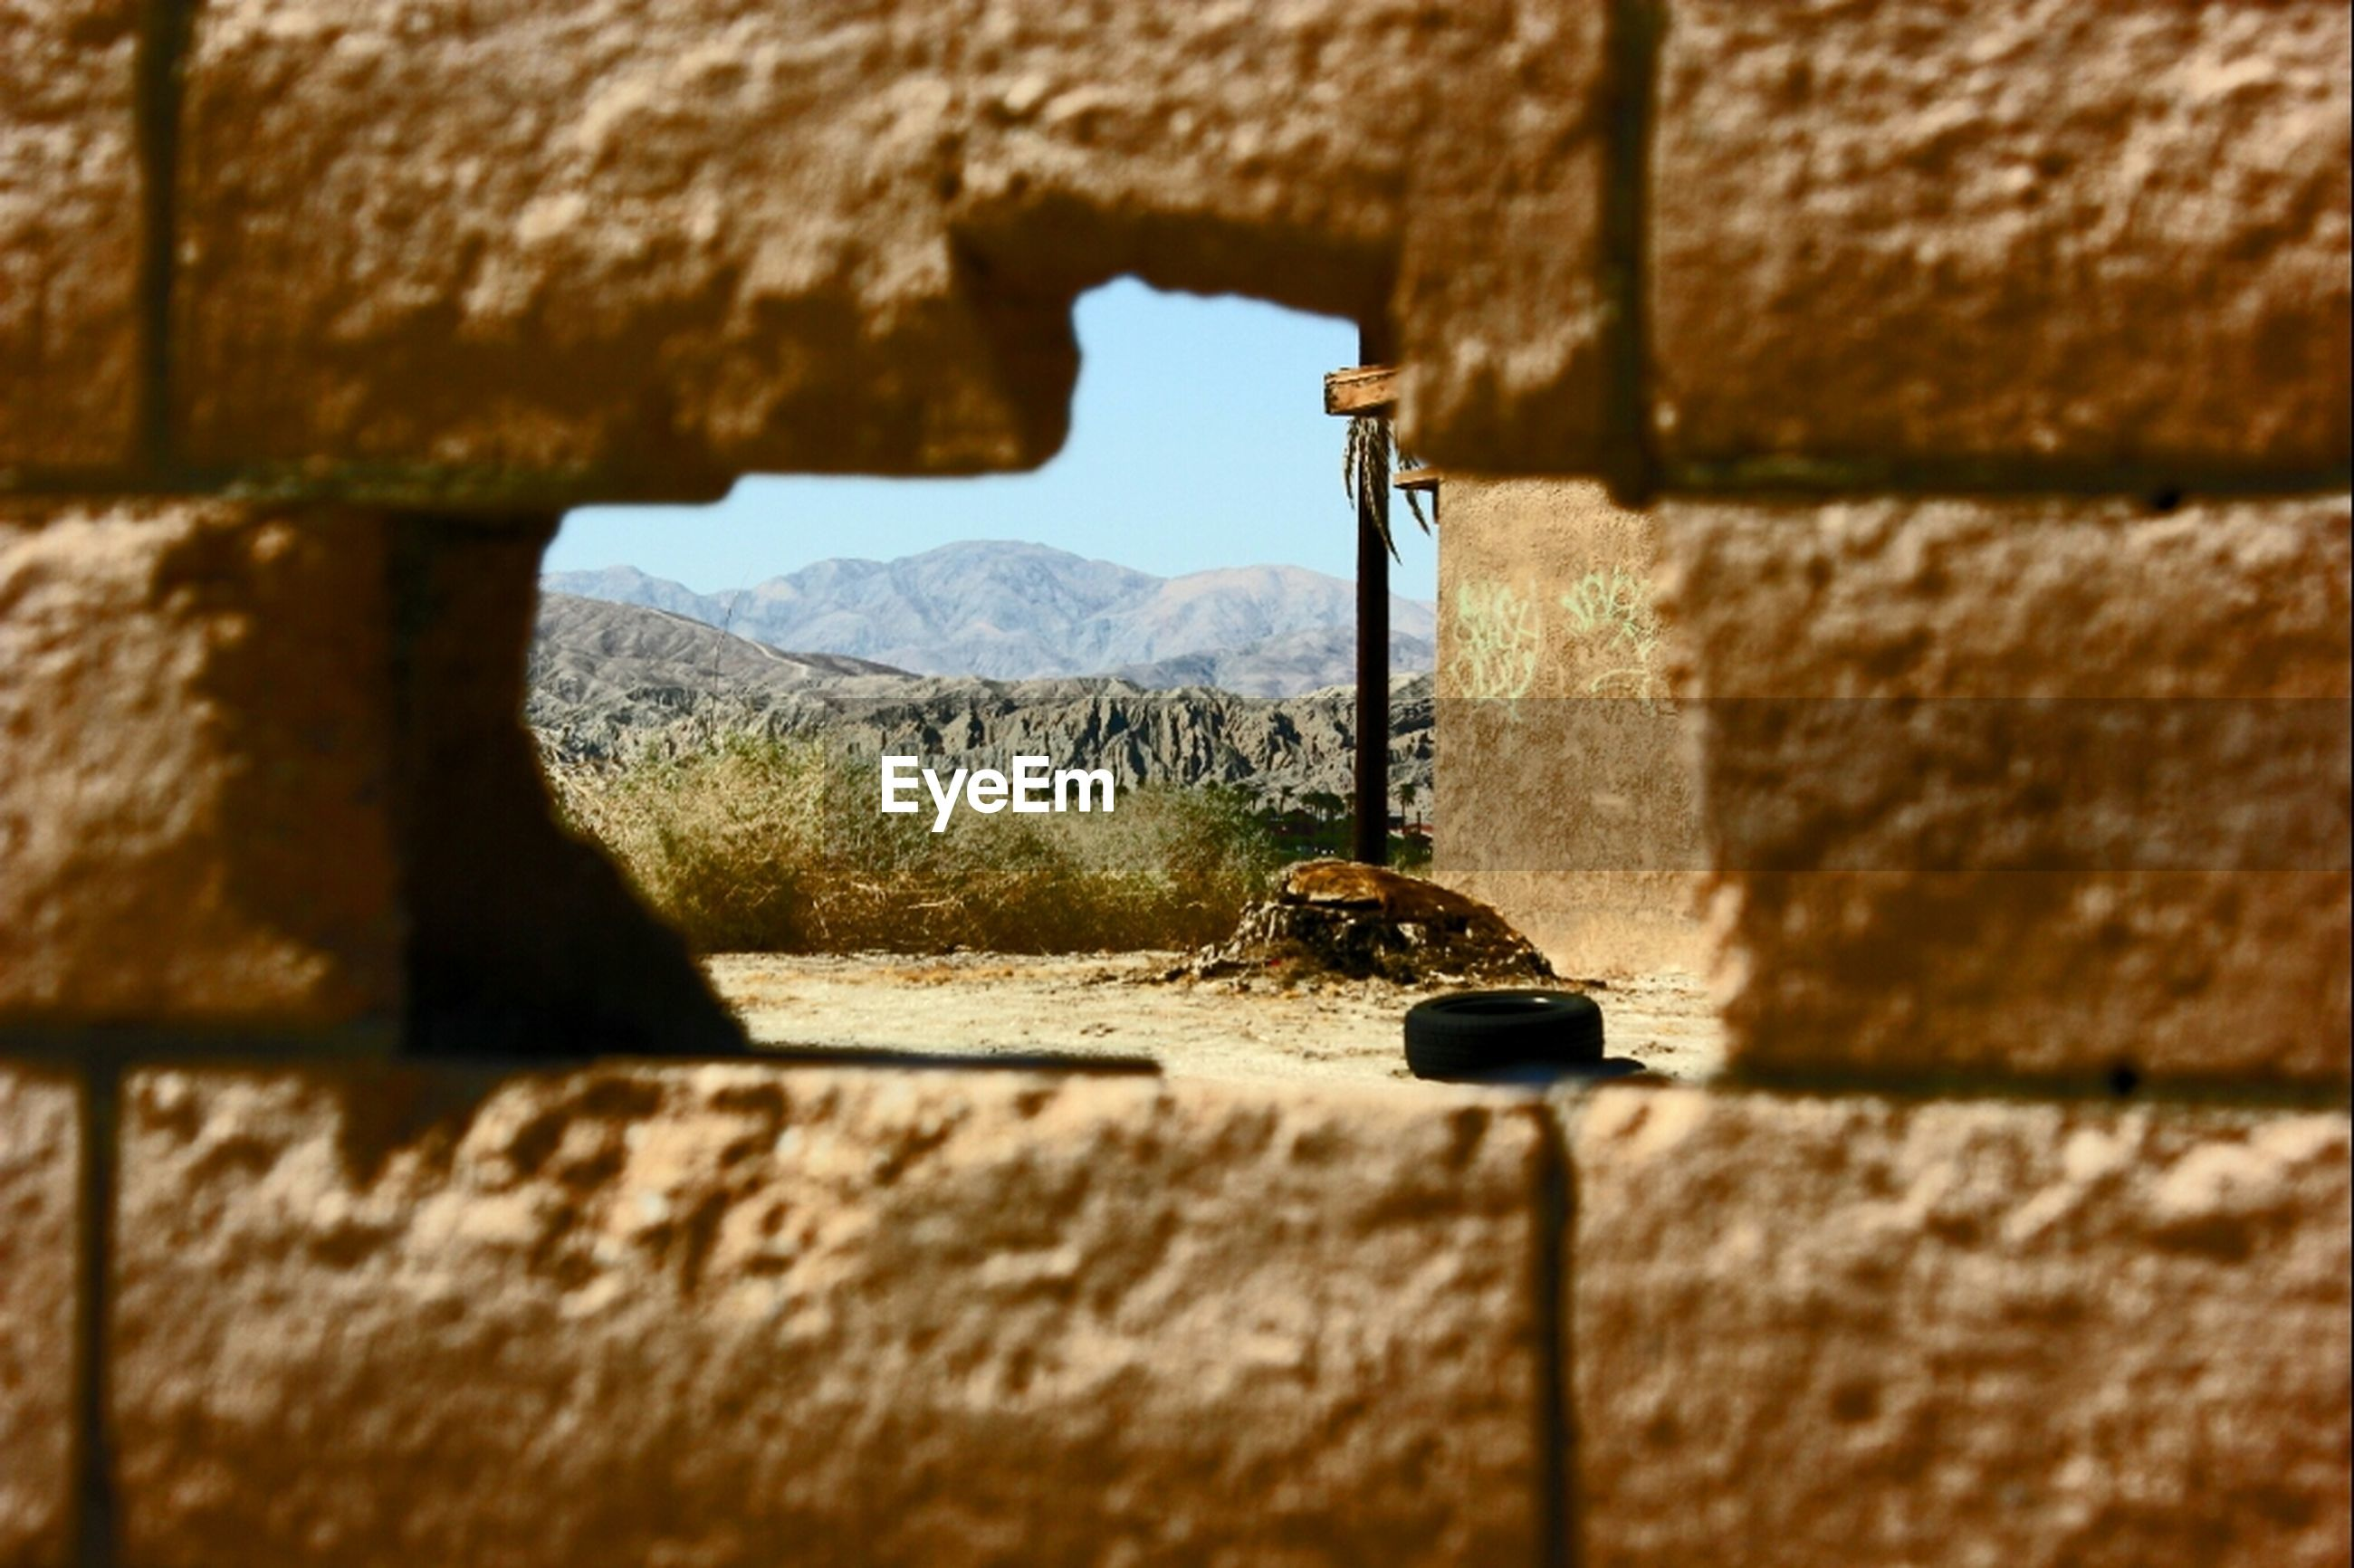 built structure, selective focus, architecture, wall - building feature, wall, building exterior, focus on foreground, close-up, stone wall, brick wall, surface level, metal, day, old, outdoors, no people, focus on background, house, sunlight, sky